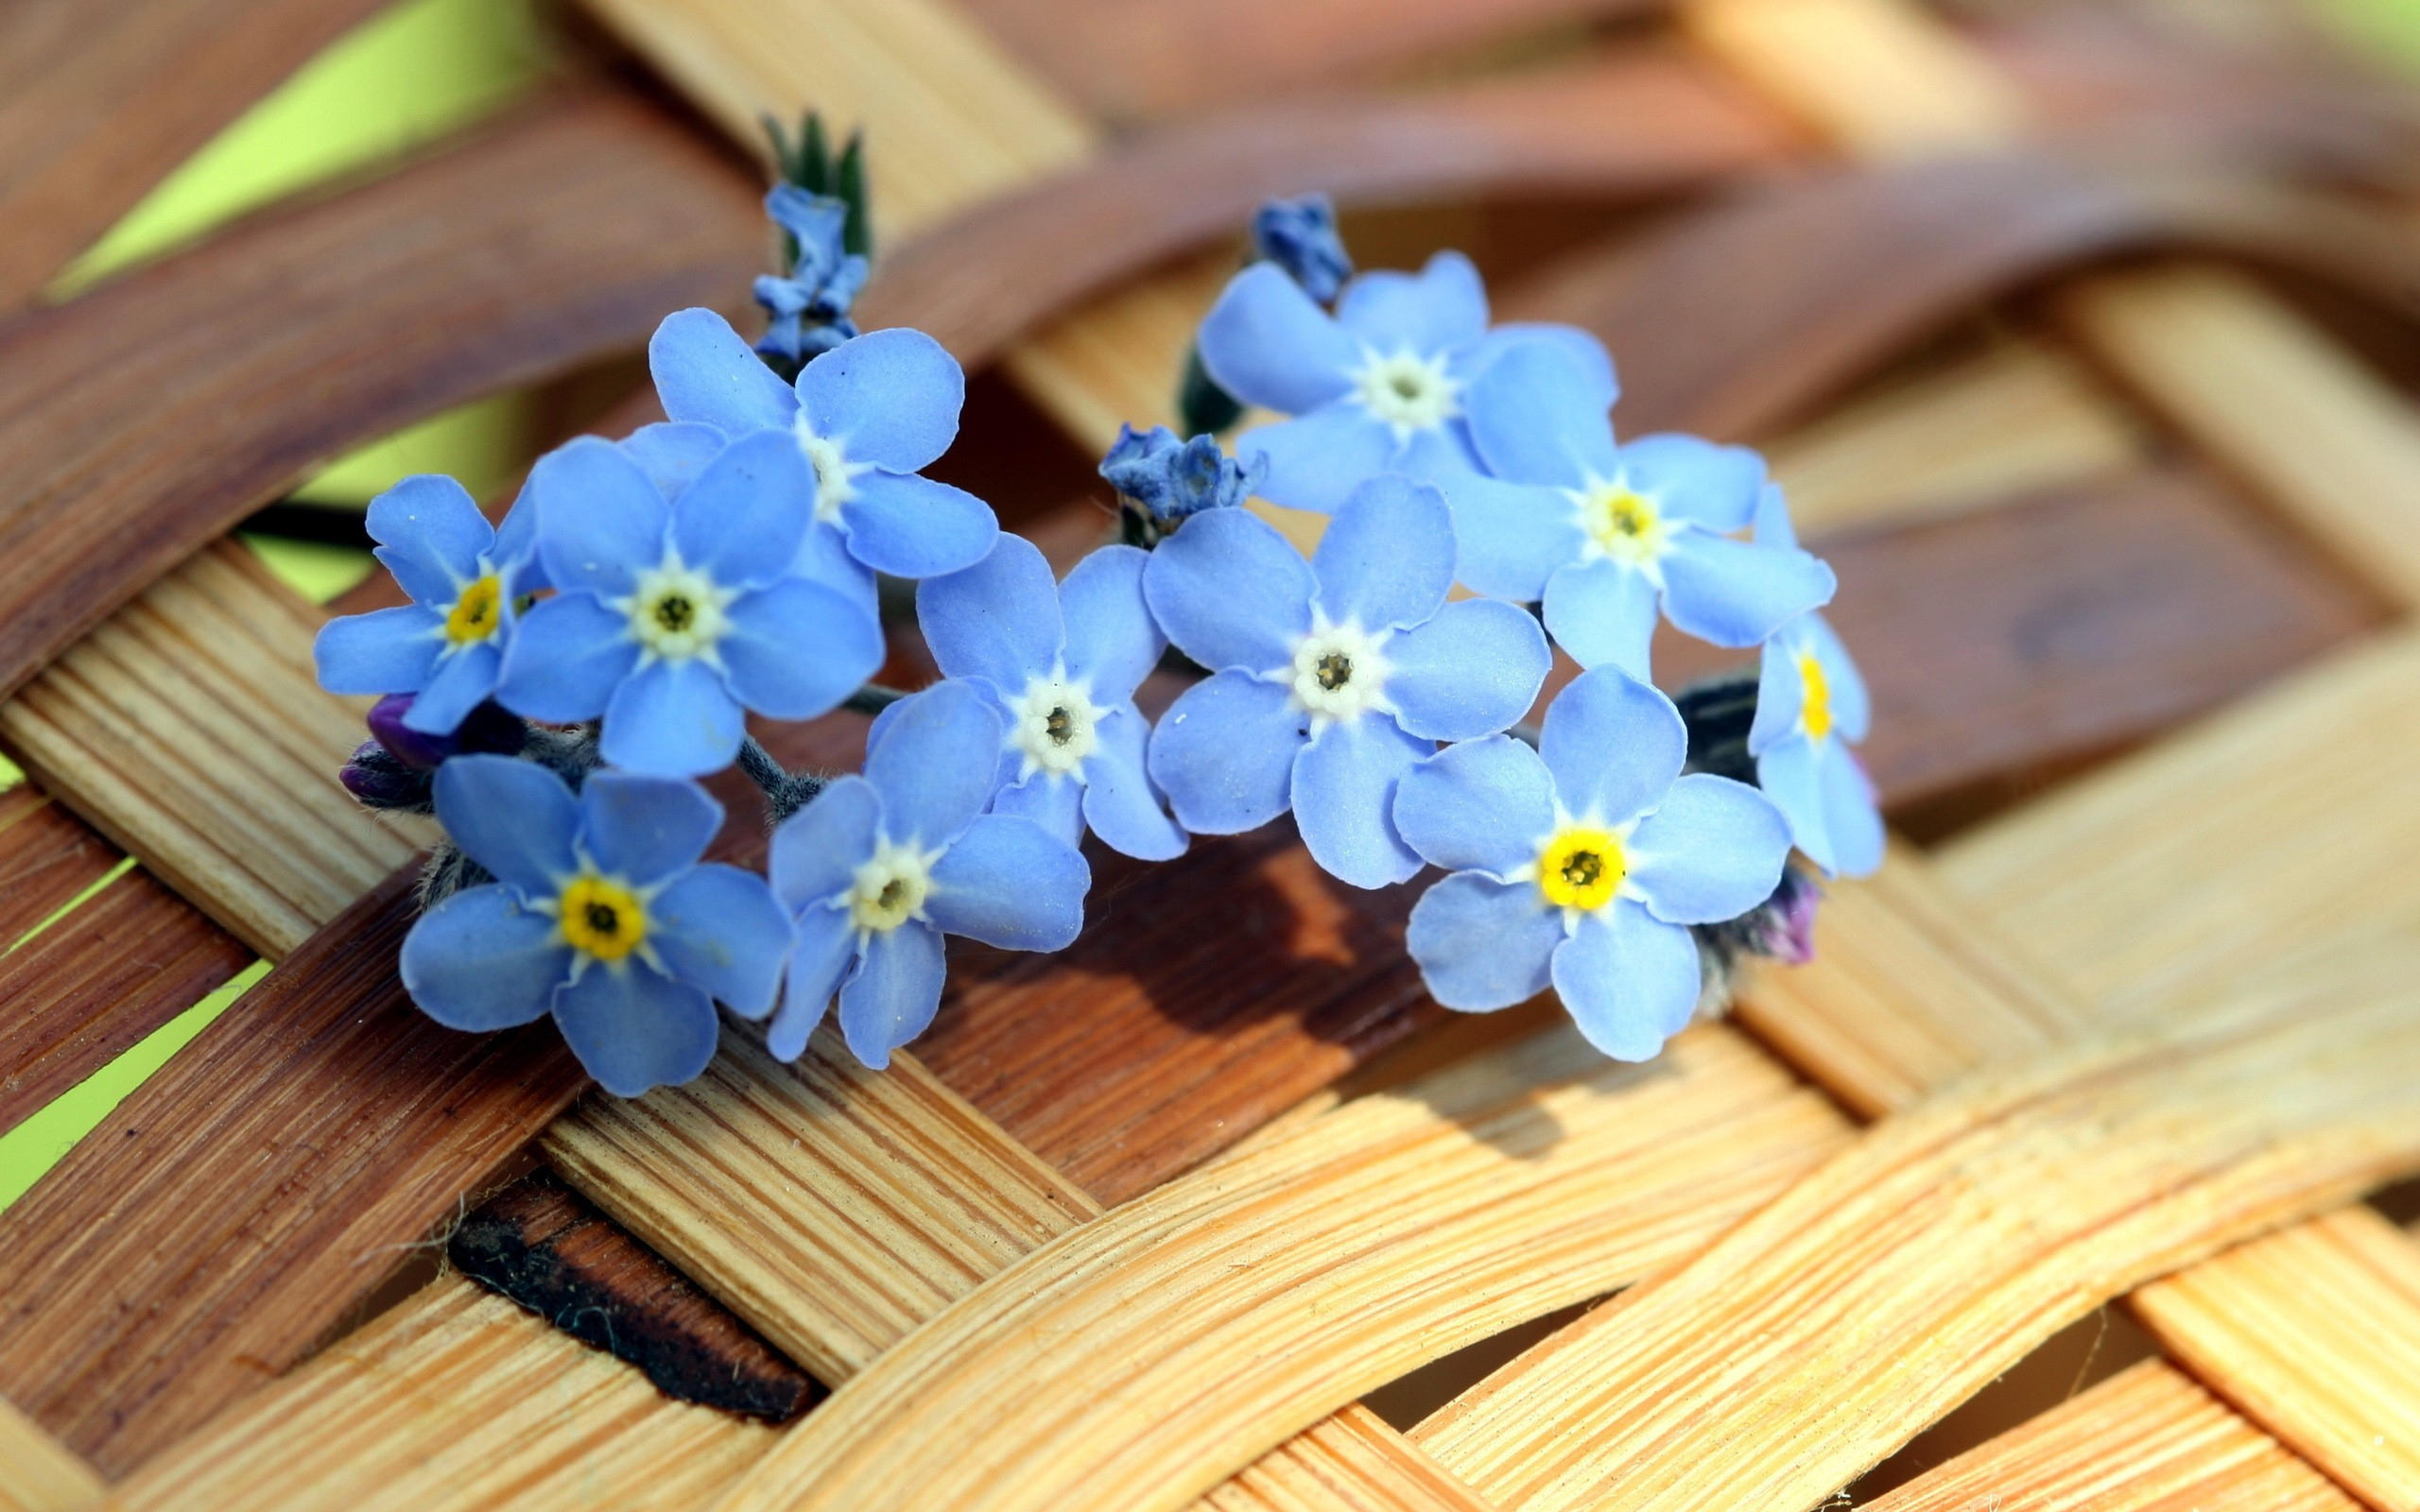 Forget Me Not Flower Wallpaper For Laptop